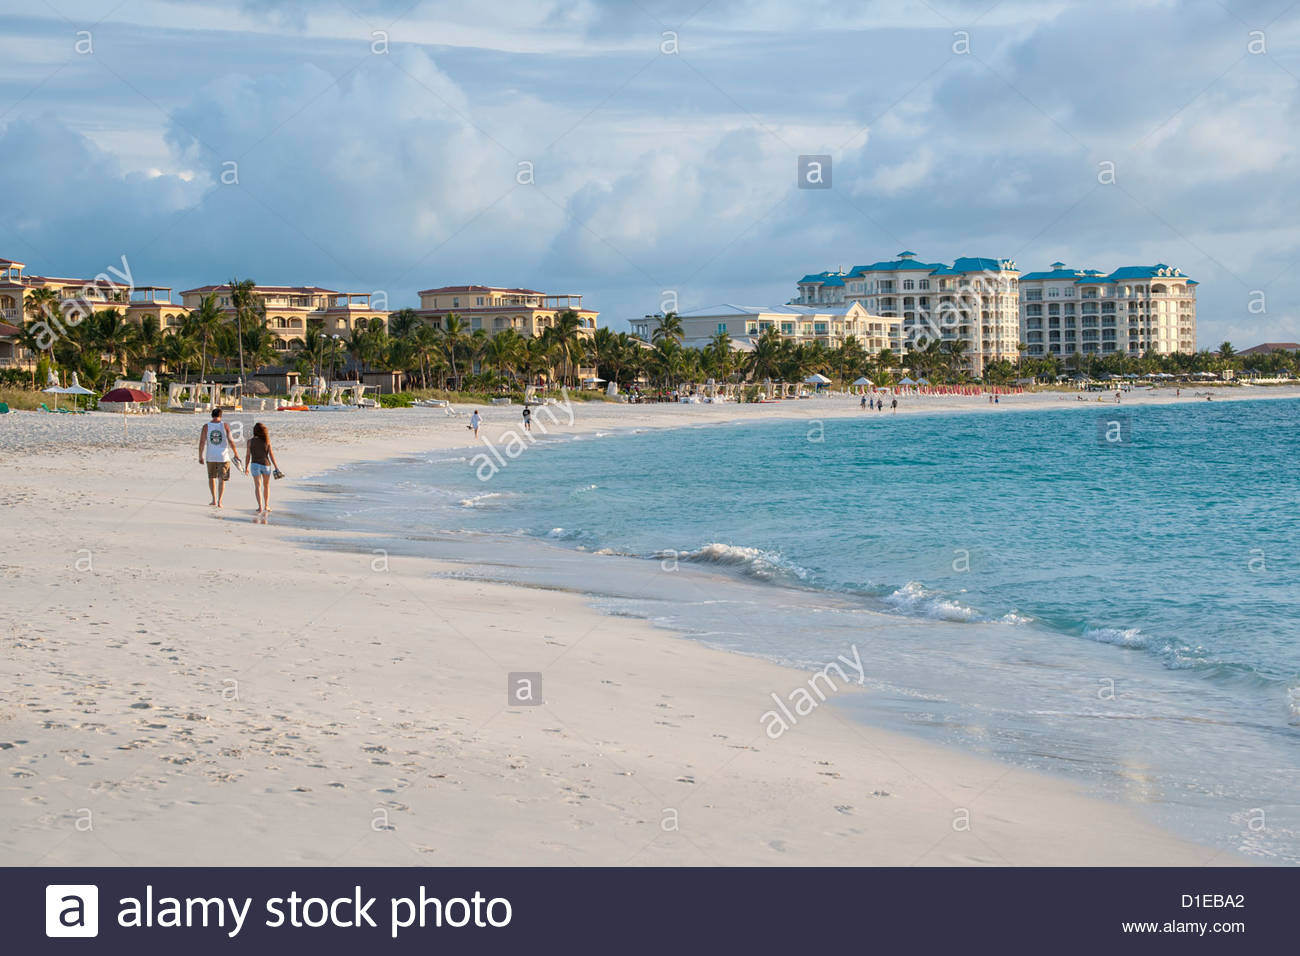 Stretch of hotels and palm trees along famous Grace Bay beach, Providenciales, Turks and Caicos Islands, West Indies, - Stock Image